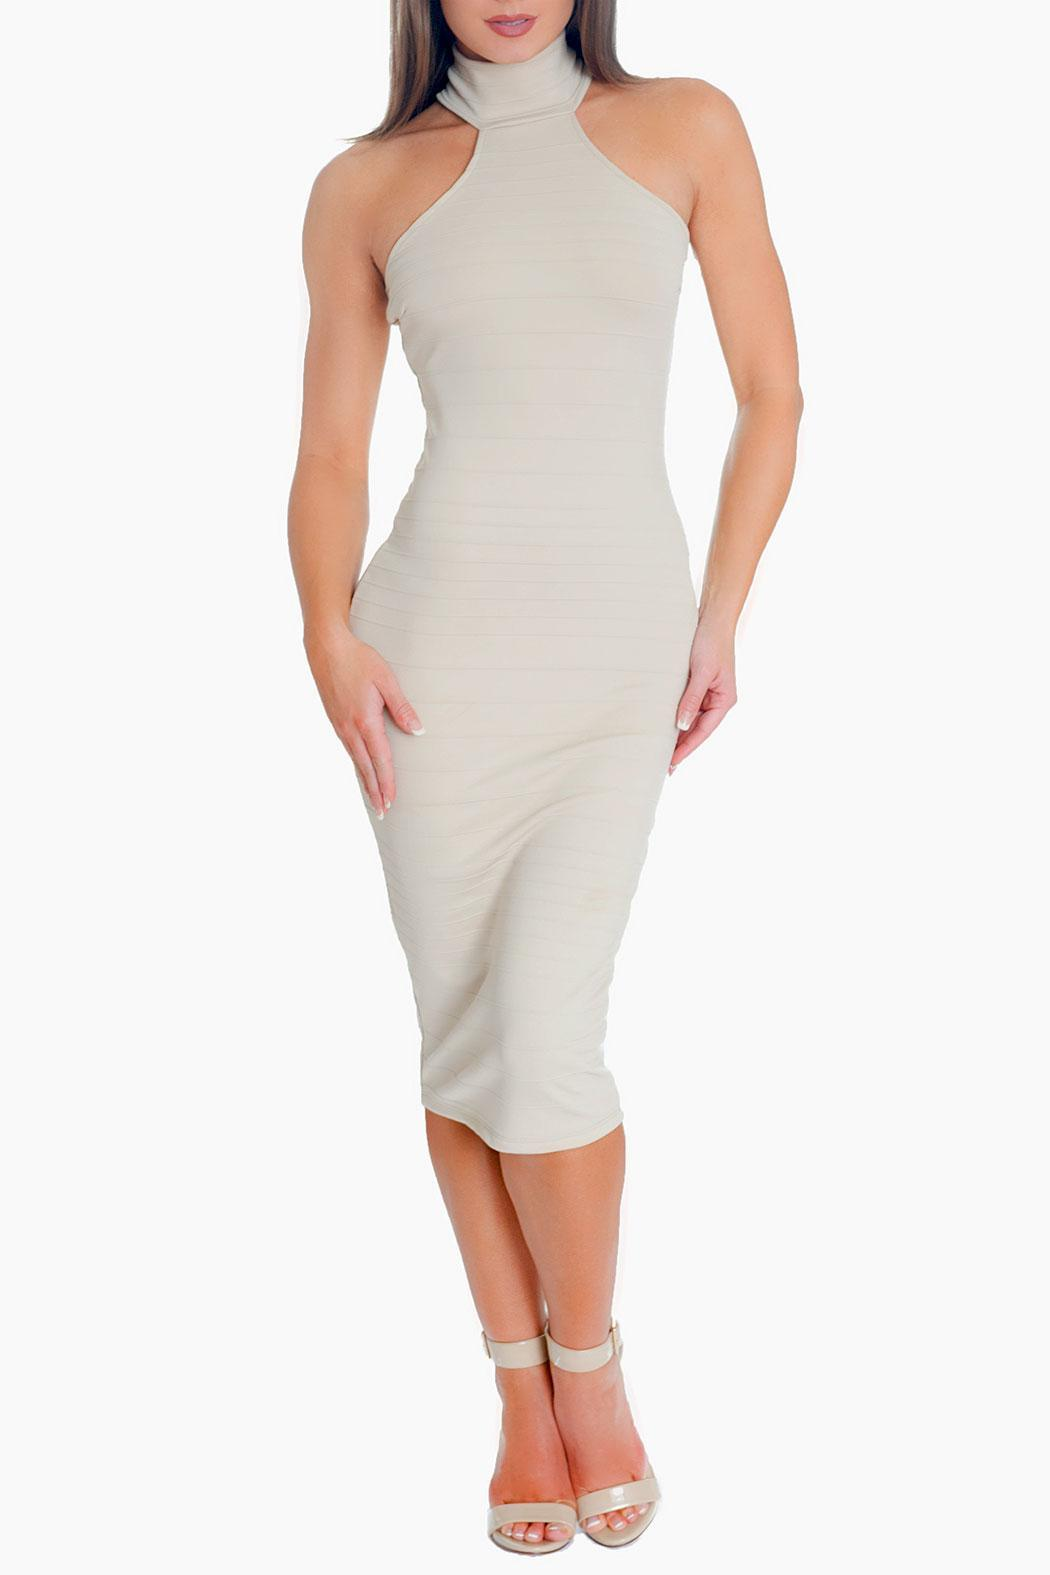 Chynna Dolls Kelly Midi Dress - Front Cropped Image